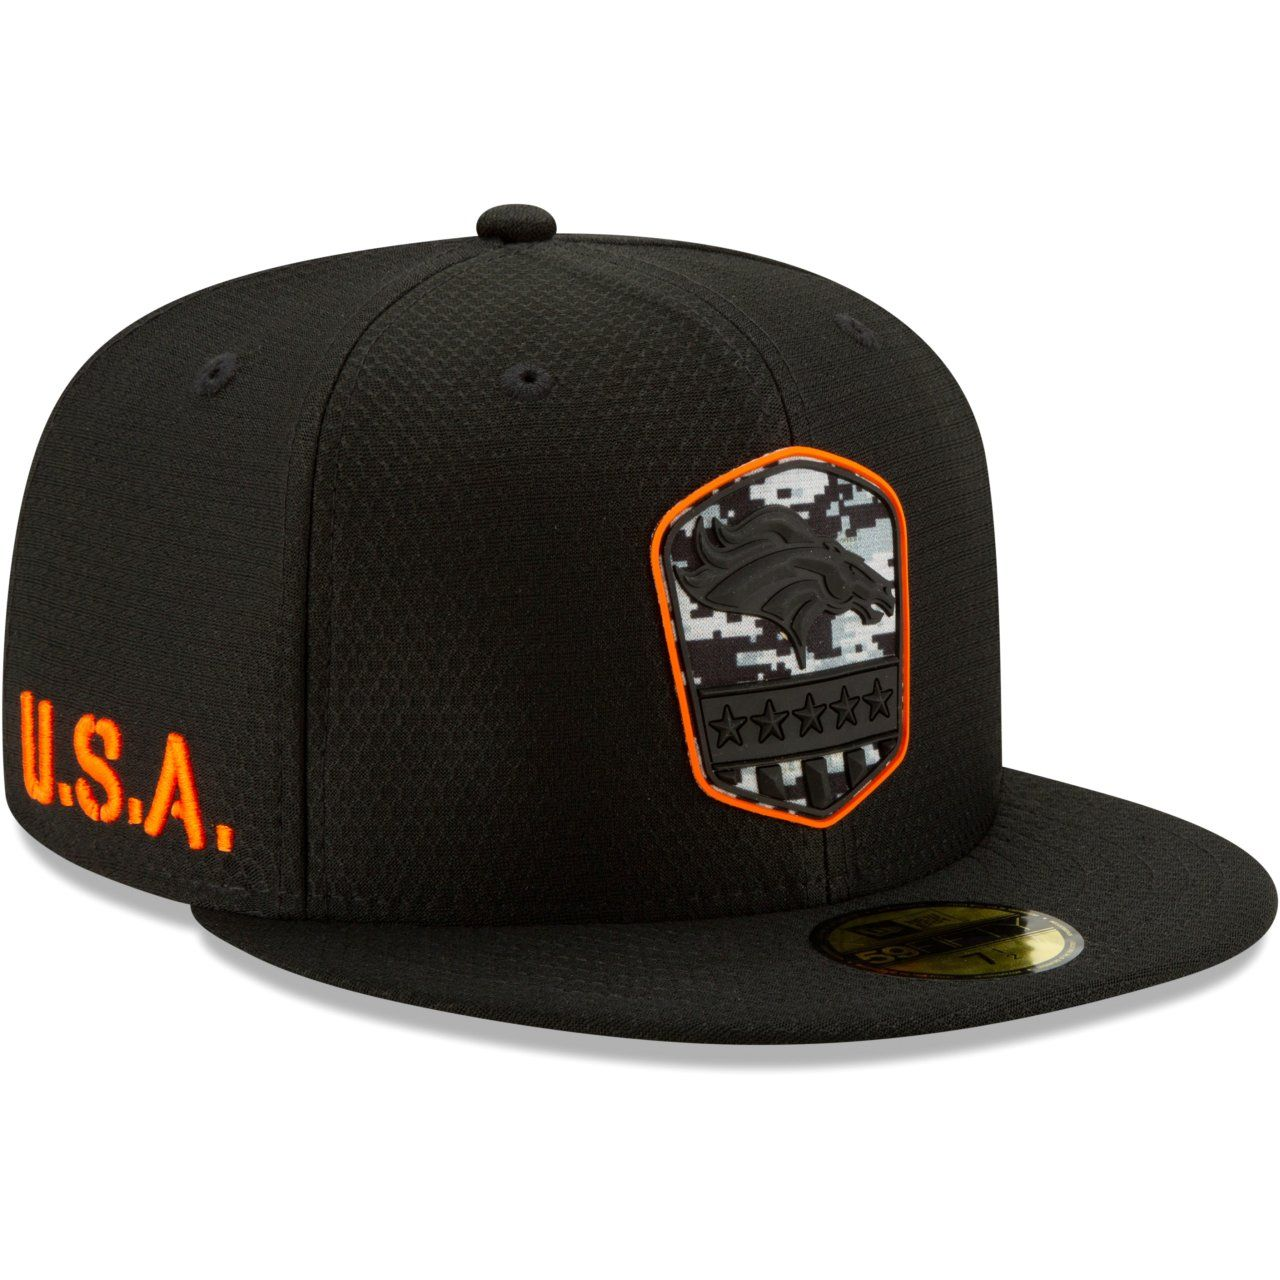 amfoo - New Era 59Fifty Cap - Salute to Service Denver Broncos